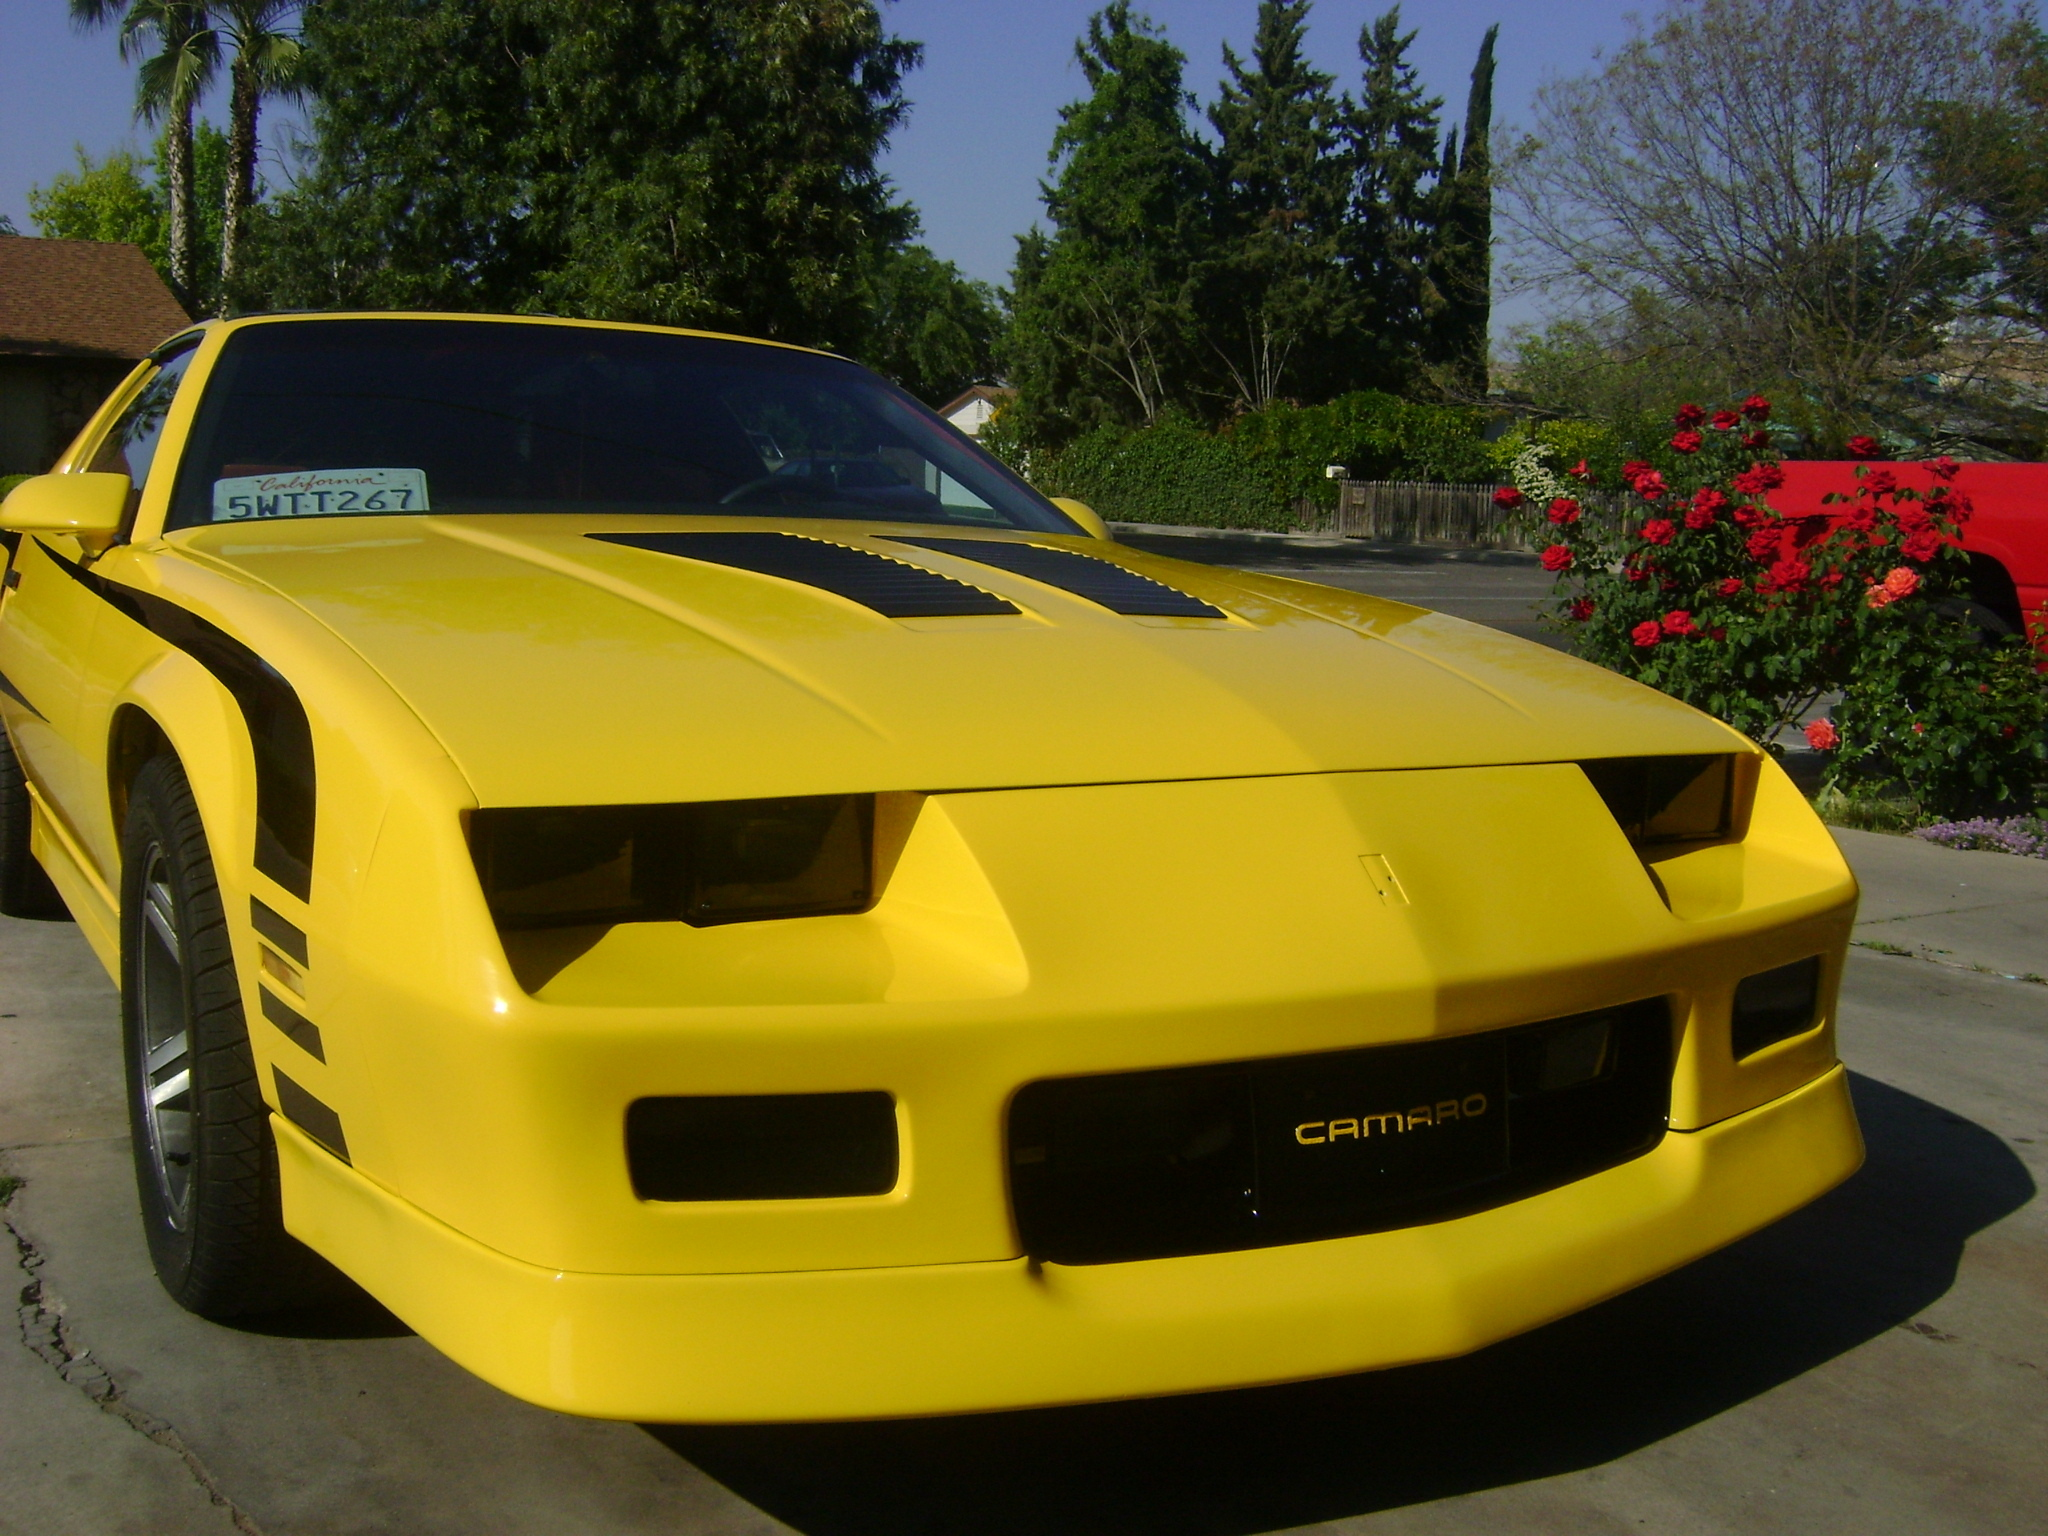 89iroc z559 1989 chevrolet camaro specs photos modification info at cardomain. Black Bedroom Furniture Sets. Home Design Ideas